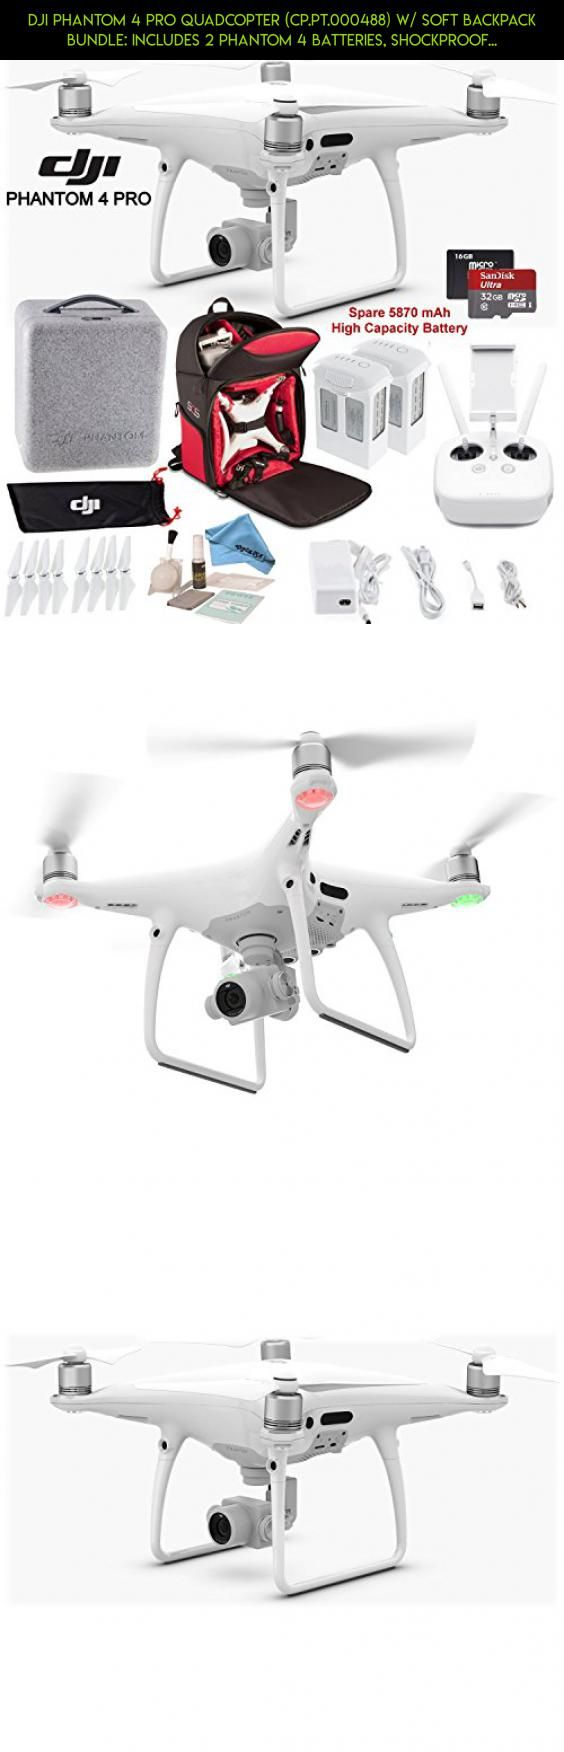 DJI Phantom 4 Pro Quadcopter (CP.PT.000488) w/ Soft Backpack Bundle: Includes 2 Phantom 4 Batteries, Shockproof Backpack, SanDisk 32GB Ultra MicroSD Card and more... #fpv #4 #products #kit #gadgets #technology #phantom #parts #dji #camera #battery #pro #plans #bundle #tech #2 #racing #drone #shopping